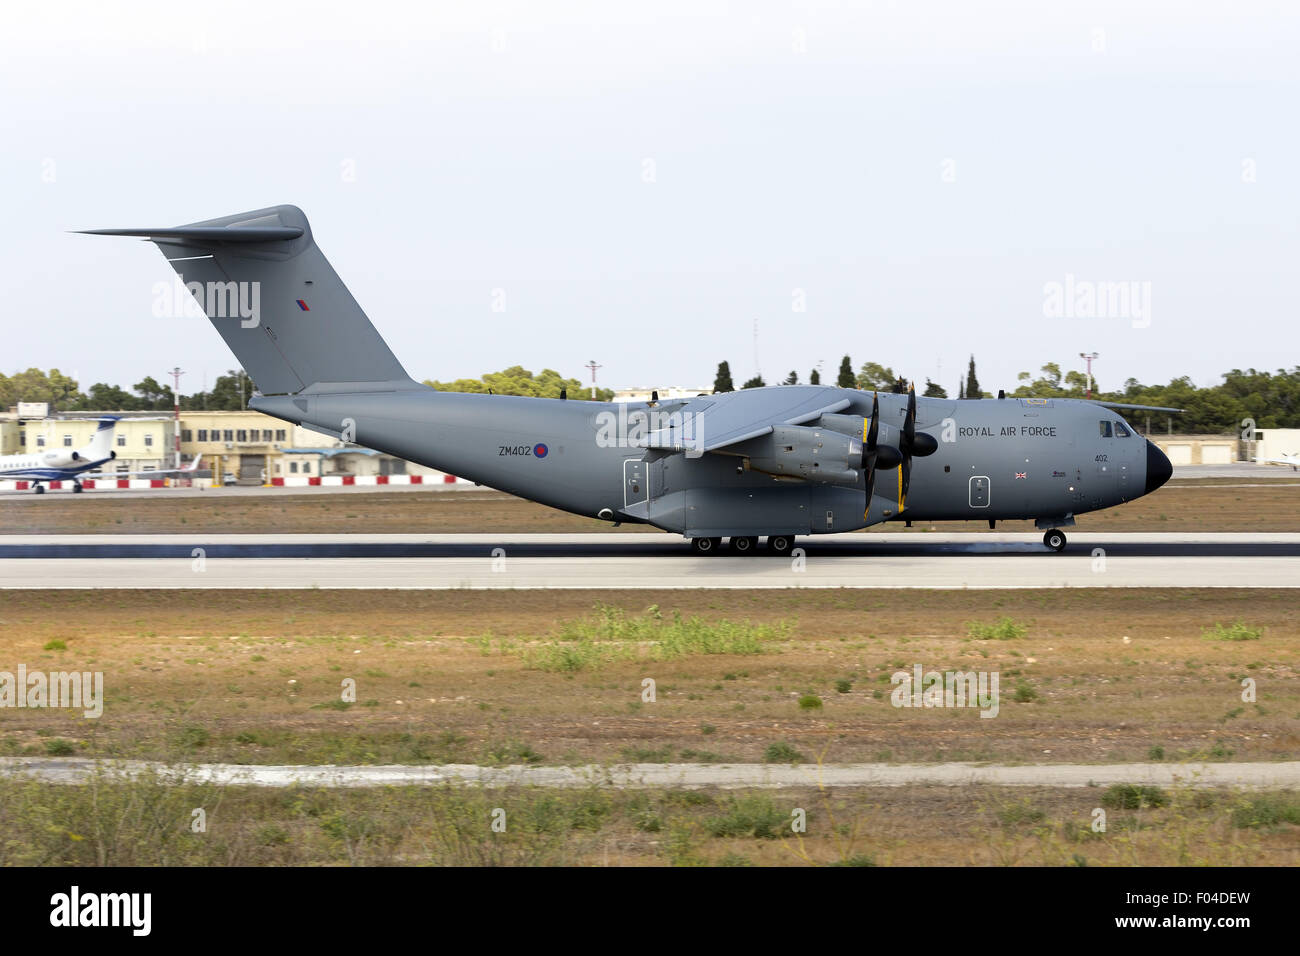 First ever Airbus A400M in Malta, Royal Air Force RAF ZM402. - Stock Image